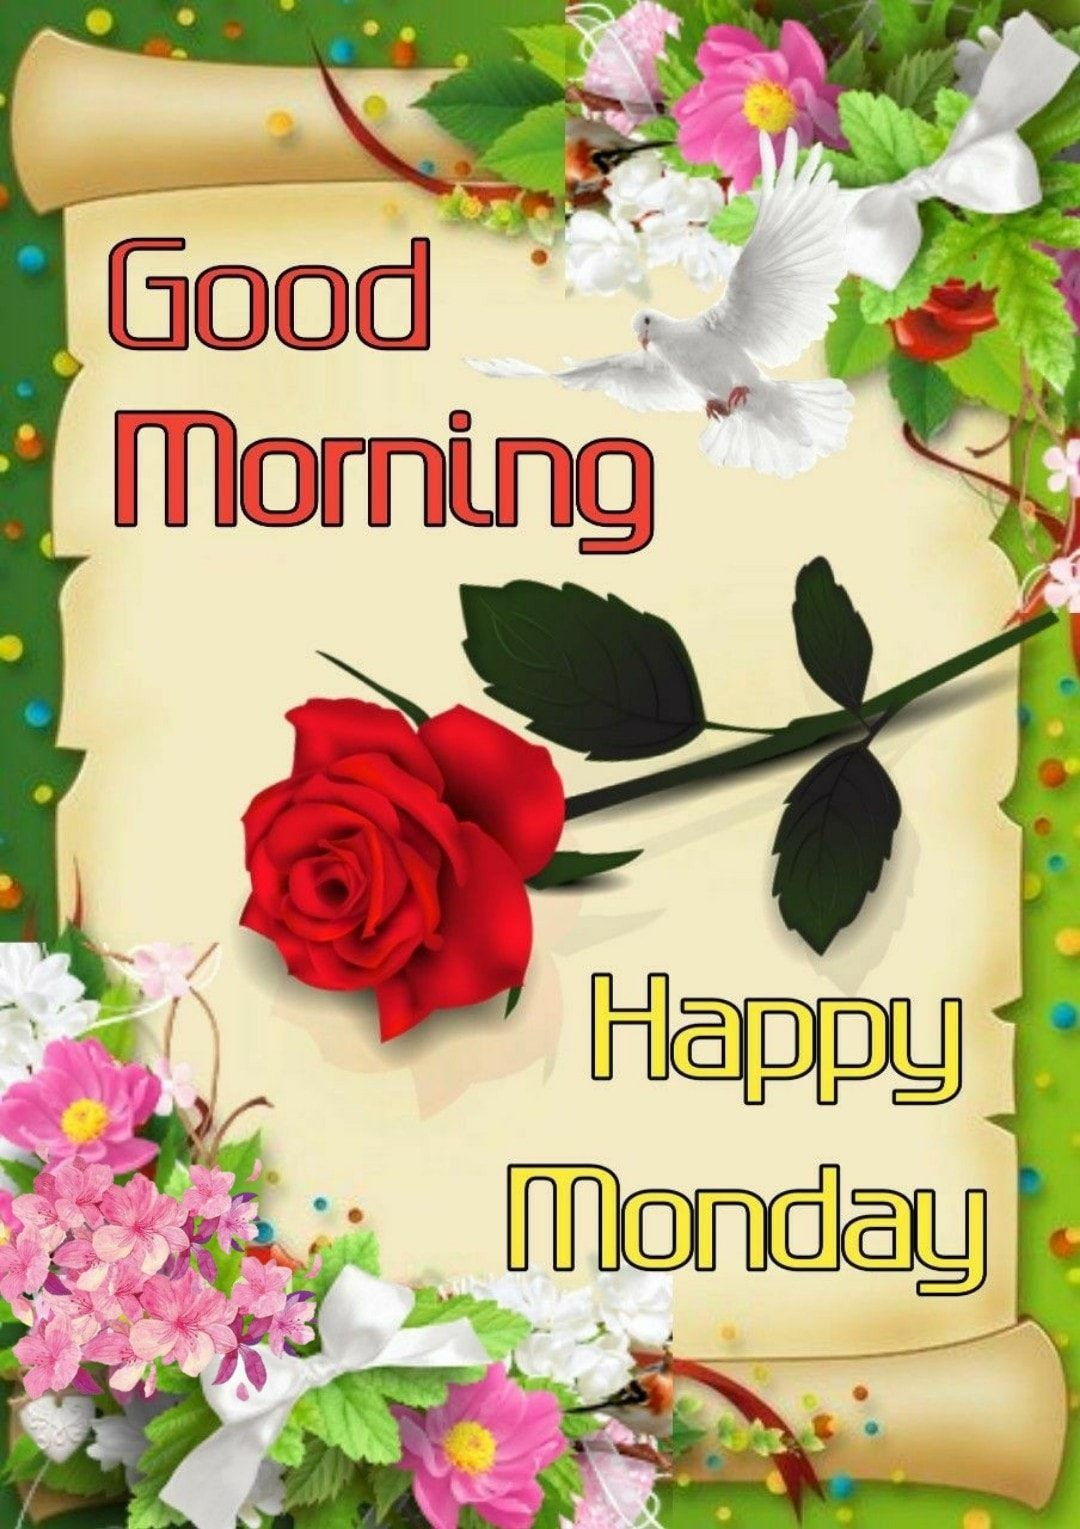 Flowery Good Morning Happy Monday Quote Pictures Photos And Images For Facebook Tumblr Pinterest And Twitter